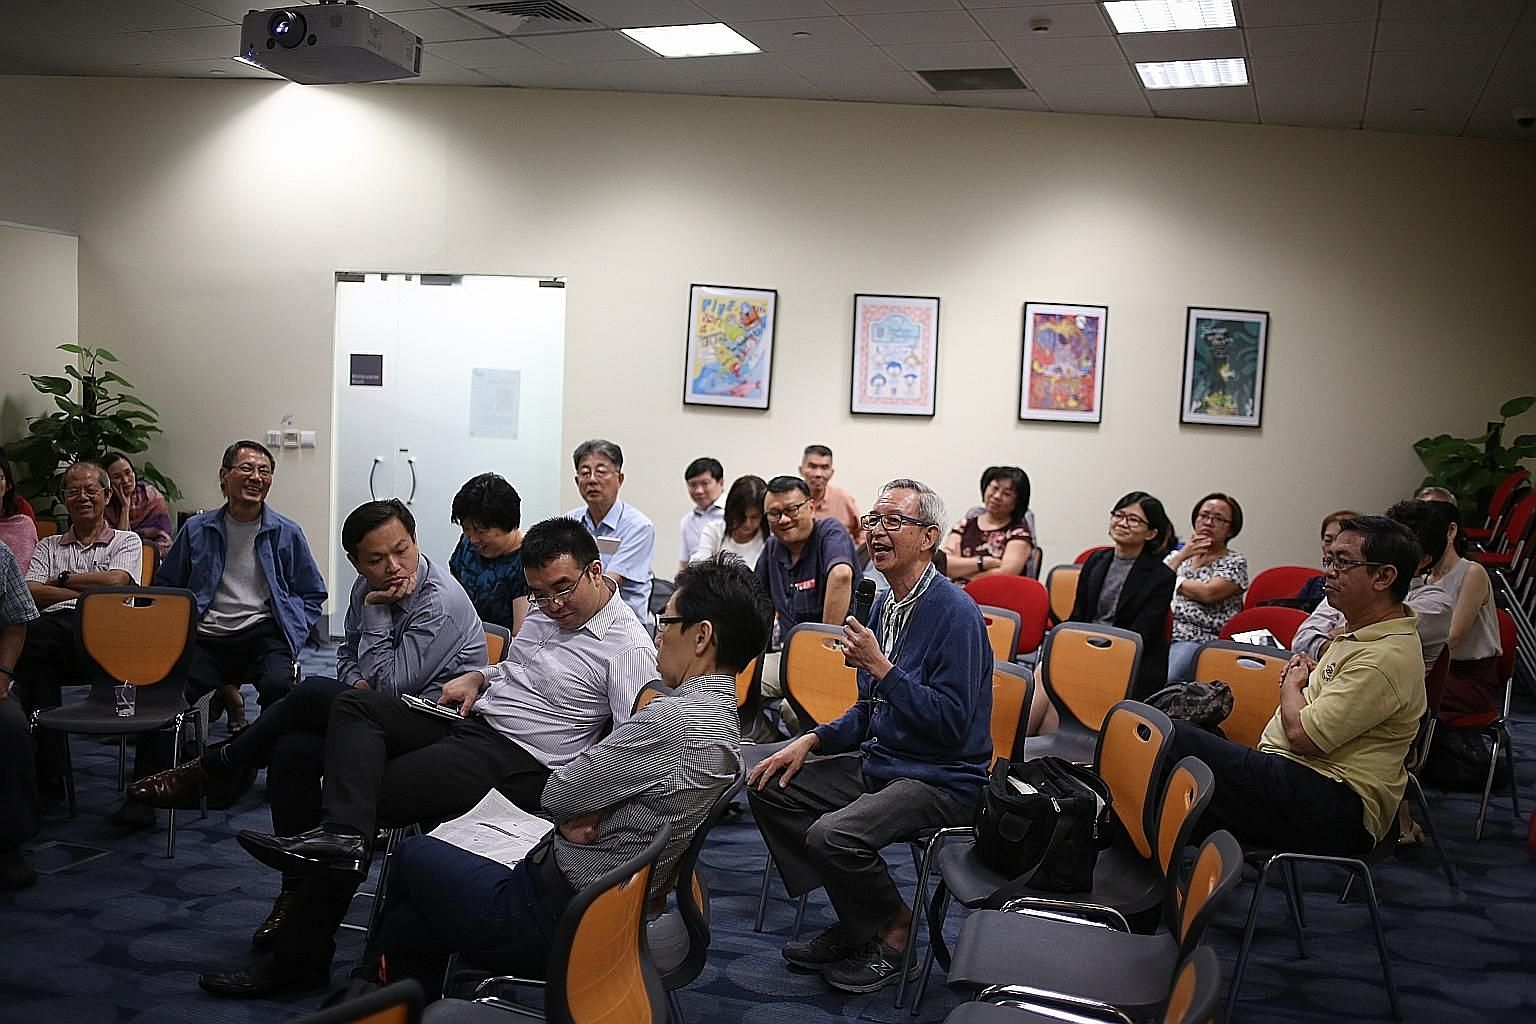 Retiree I.P. Wang (with the microphone) was among the participants at the Big Read Meet who engaged in a lively discussion on globalisation.